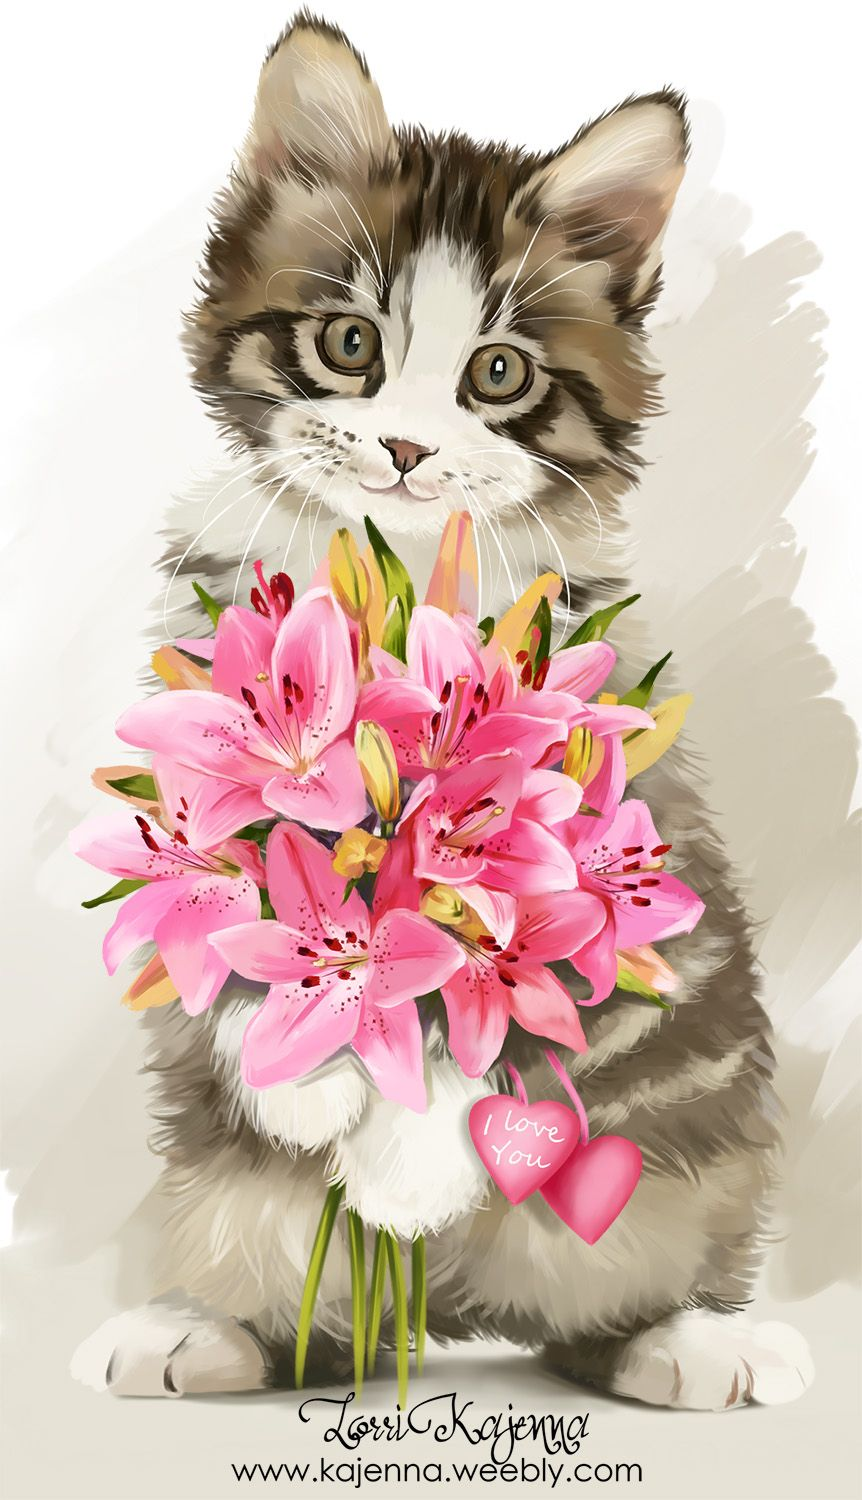 Lilybykajennaiantartondeviantart art pinterest cat paintings izmirmasajfo Choice Image